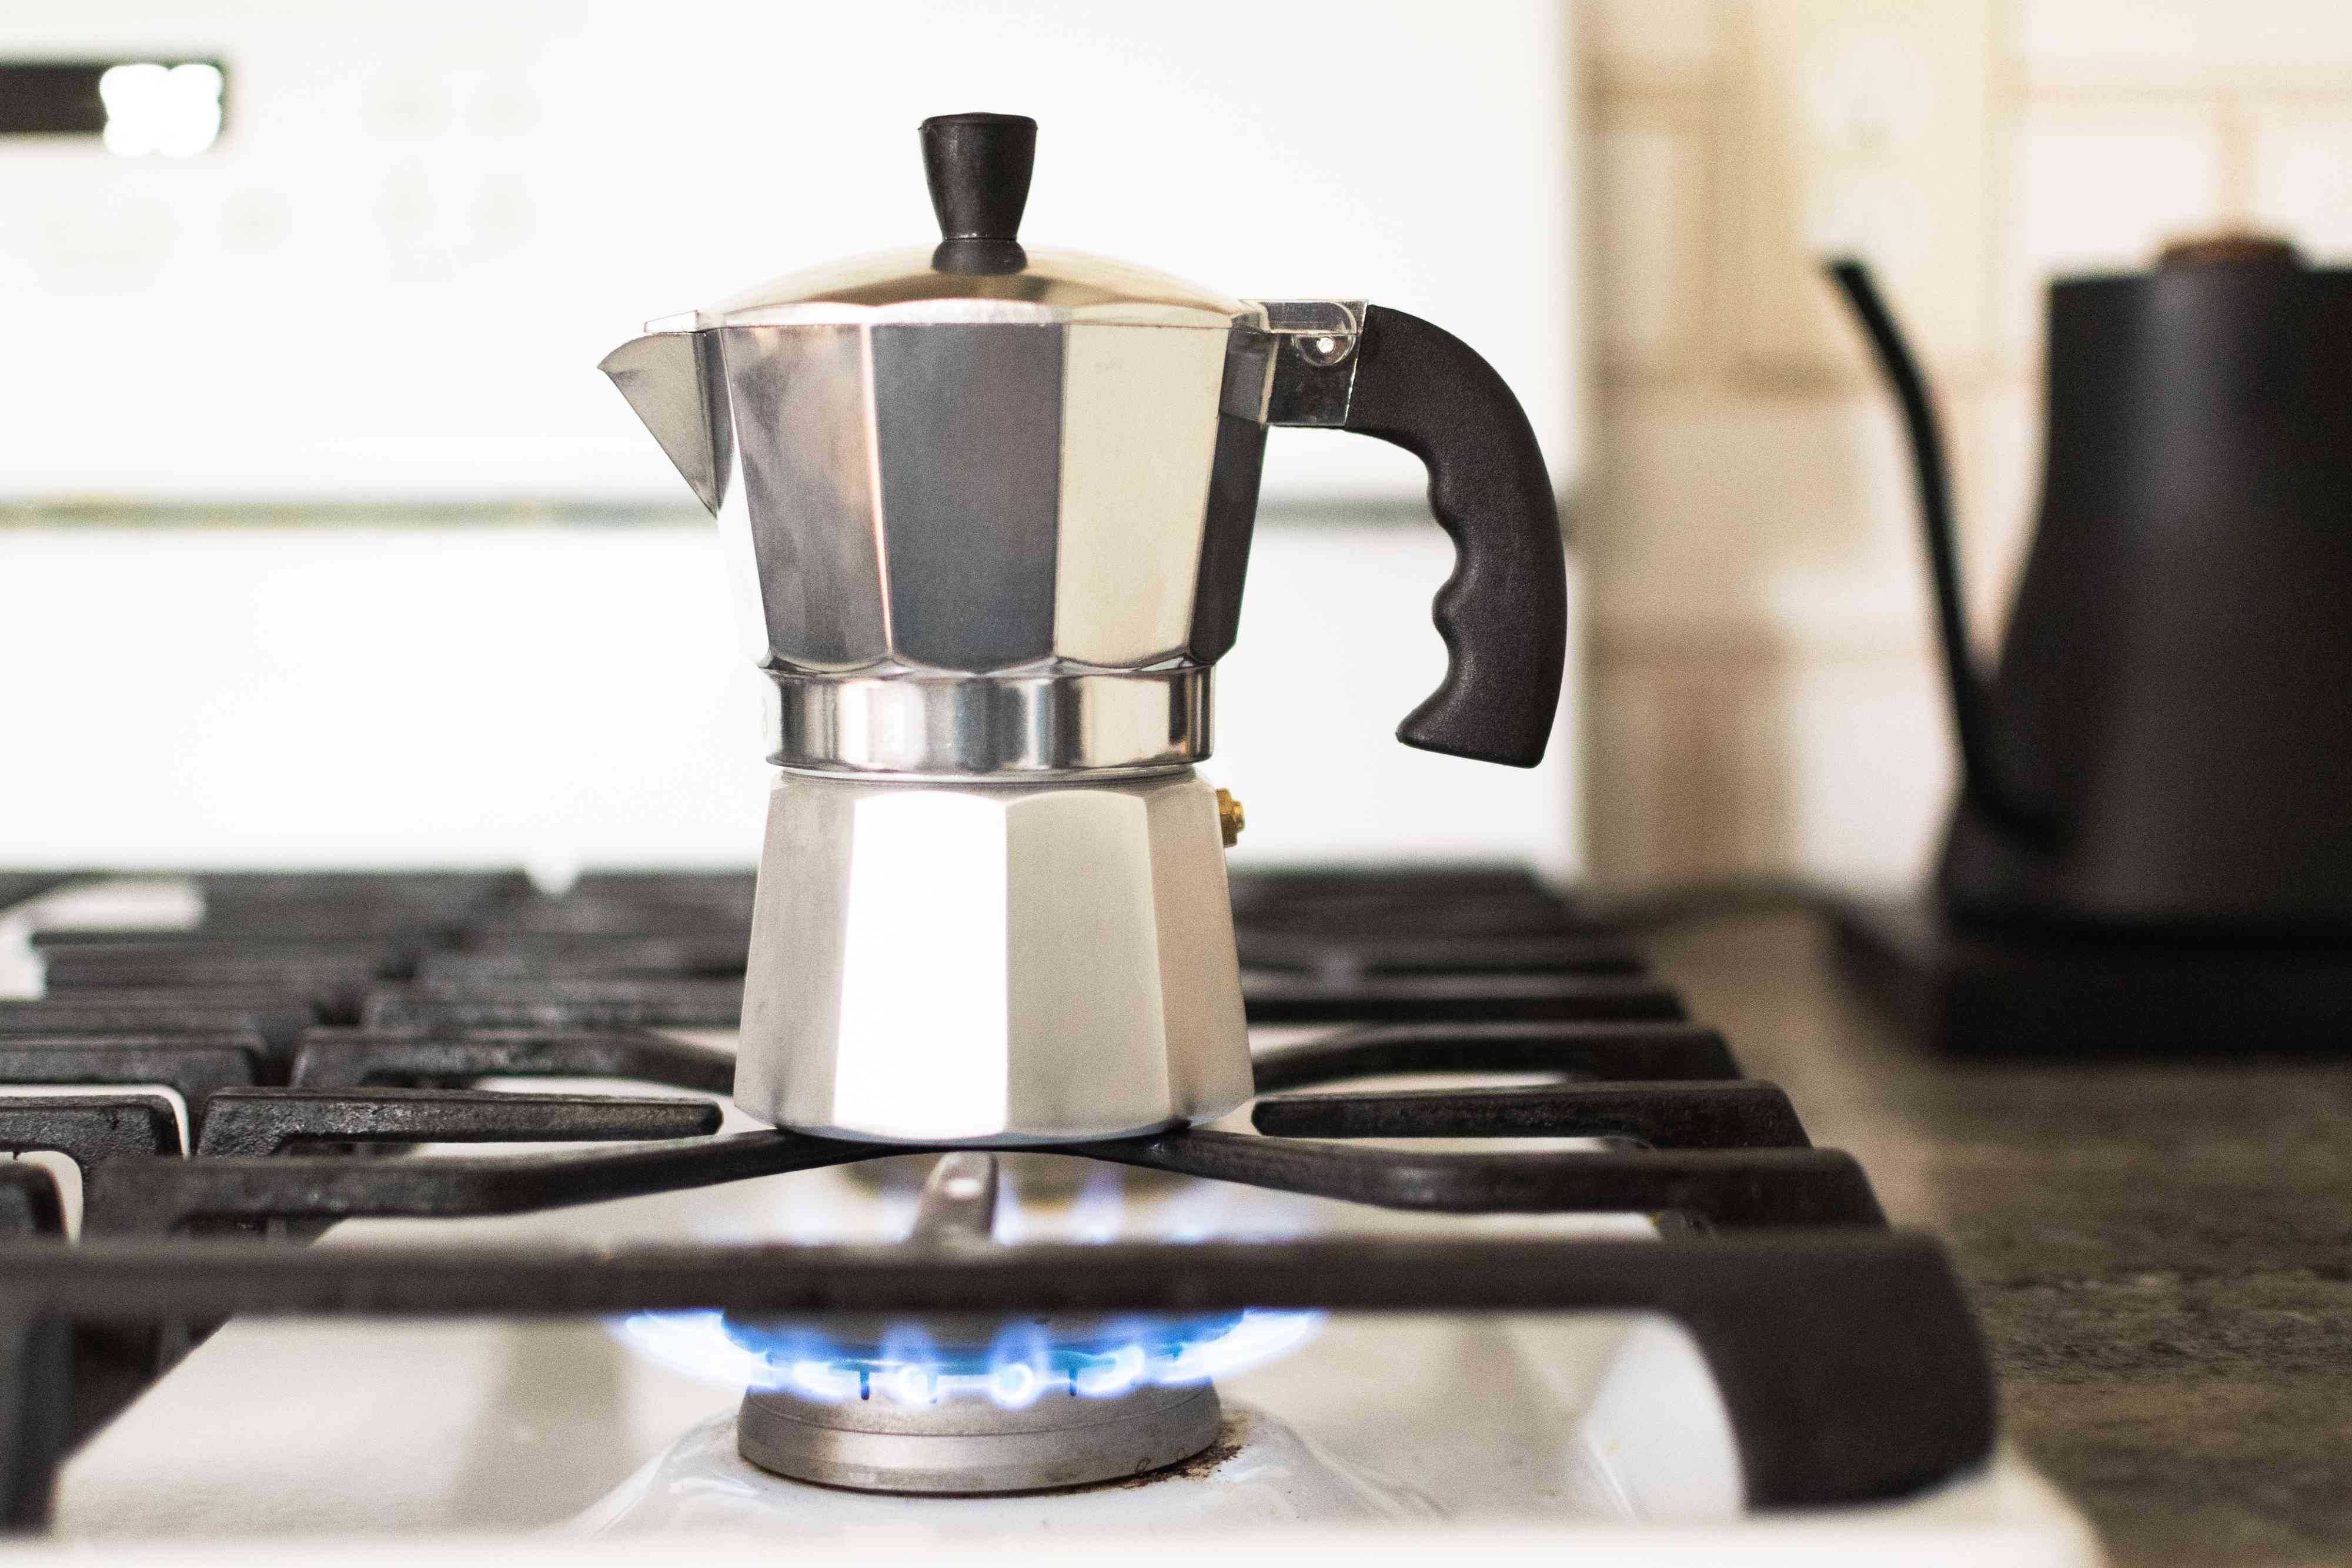 Stovetop lighted with Moka pot brewing water and distilled vinegar solution